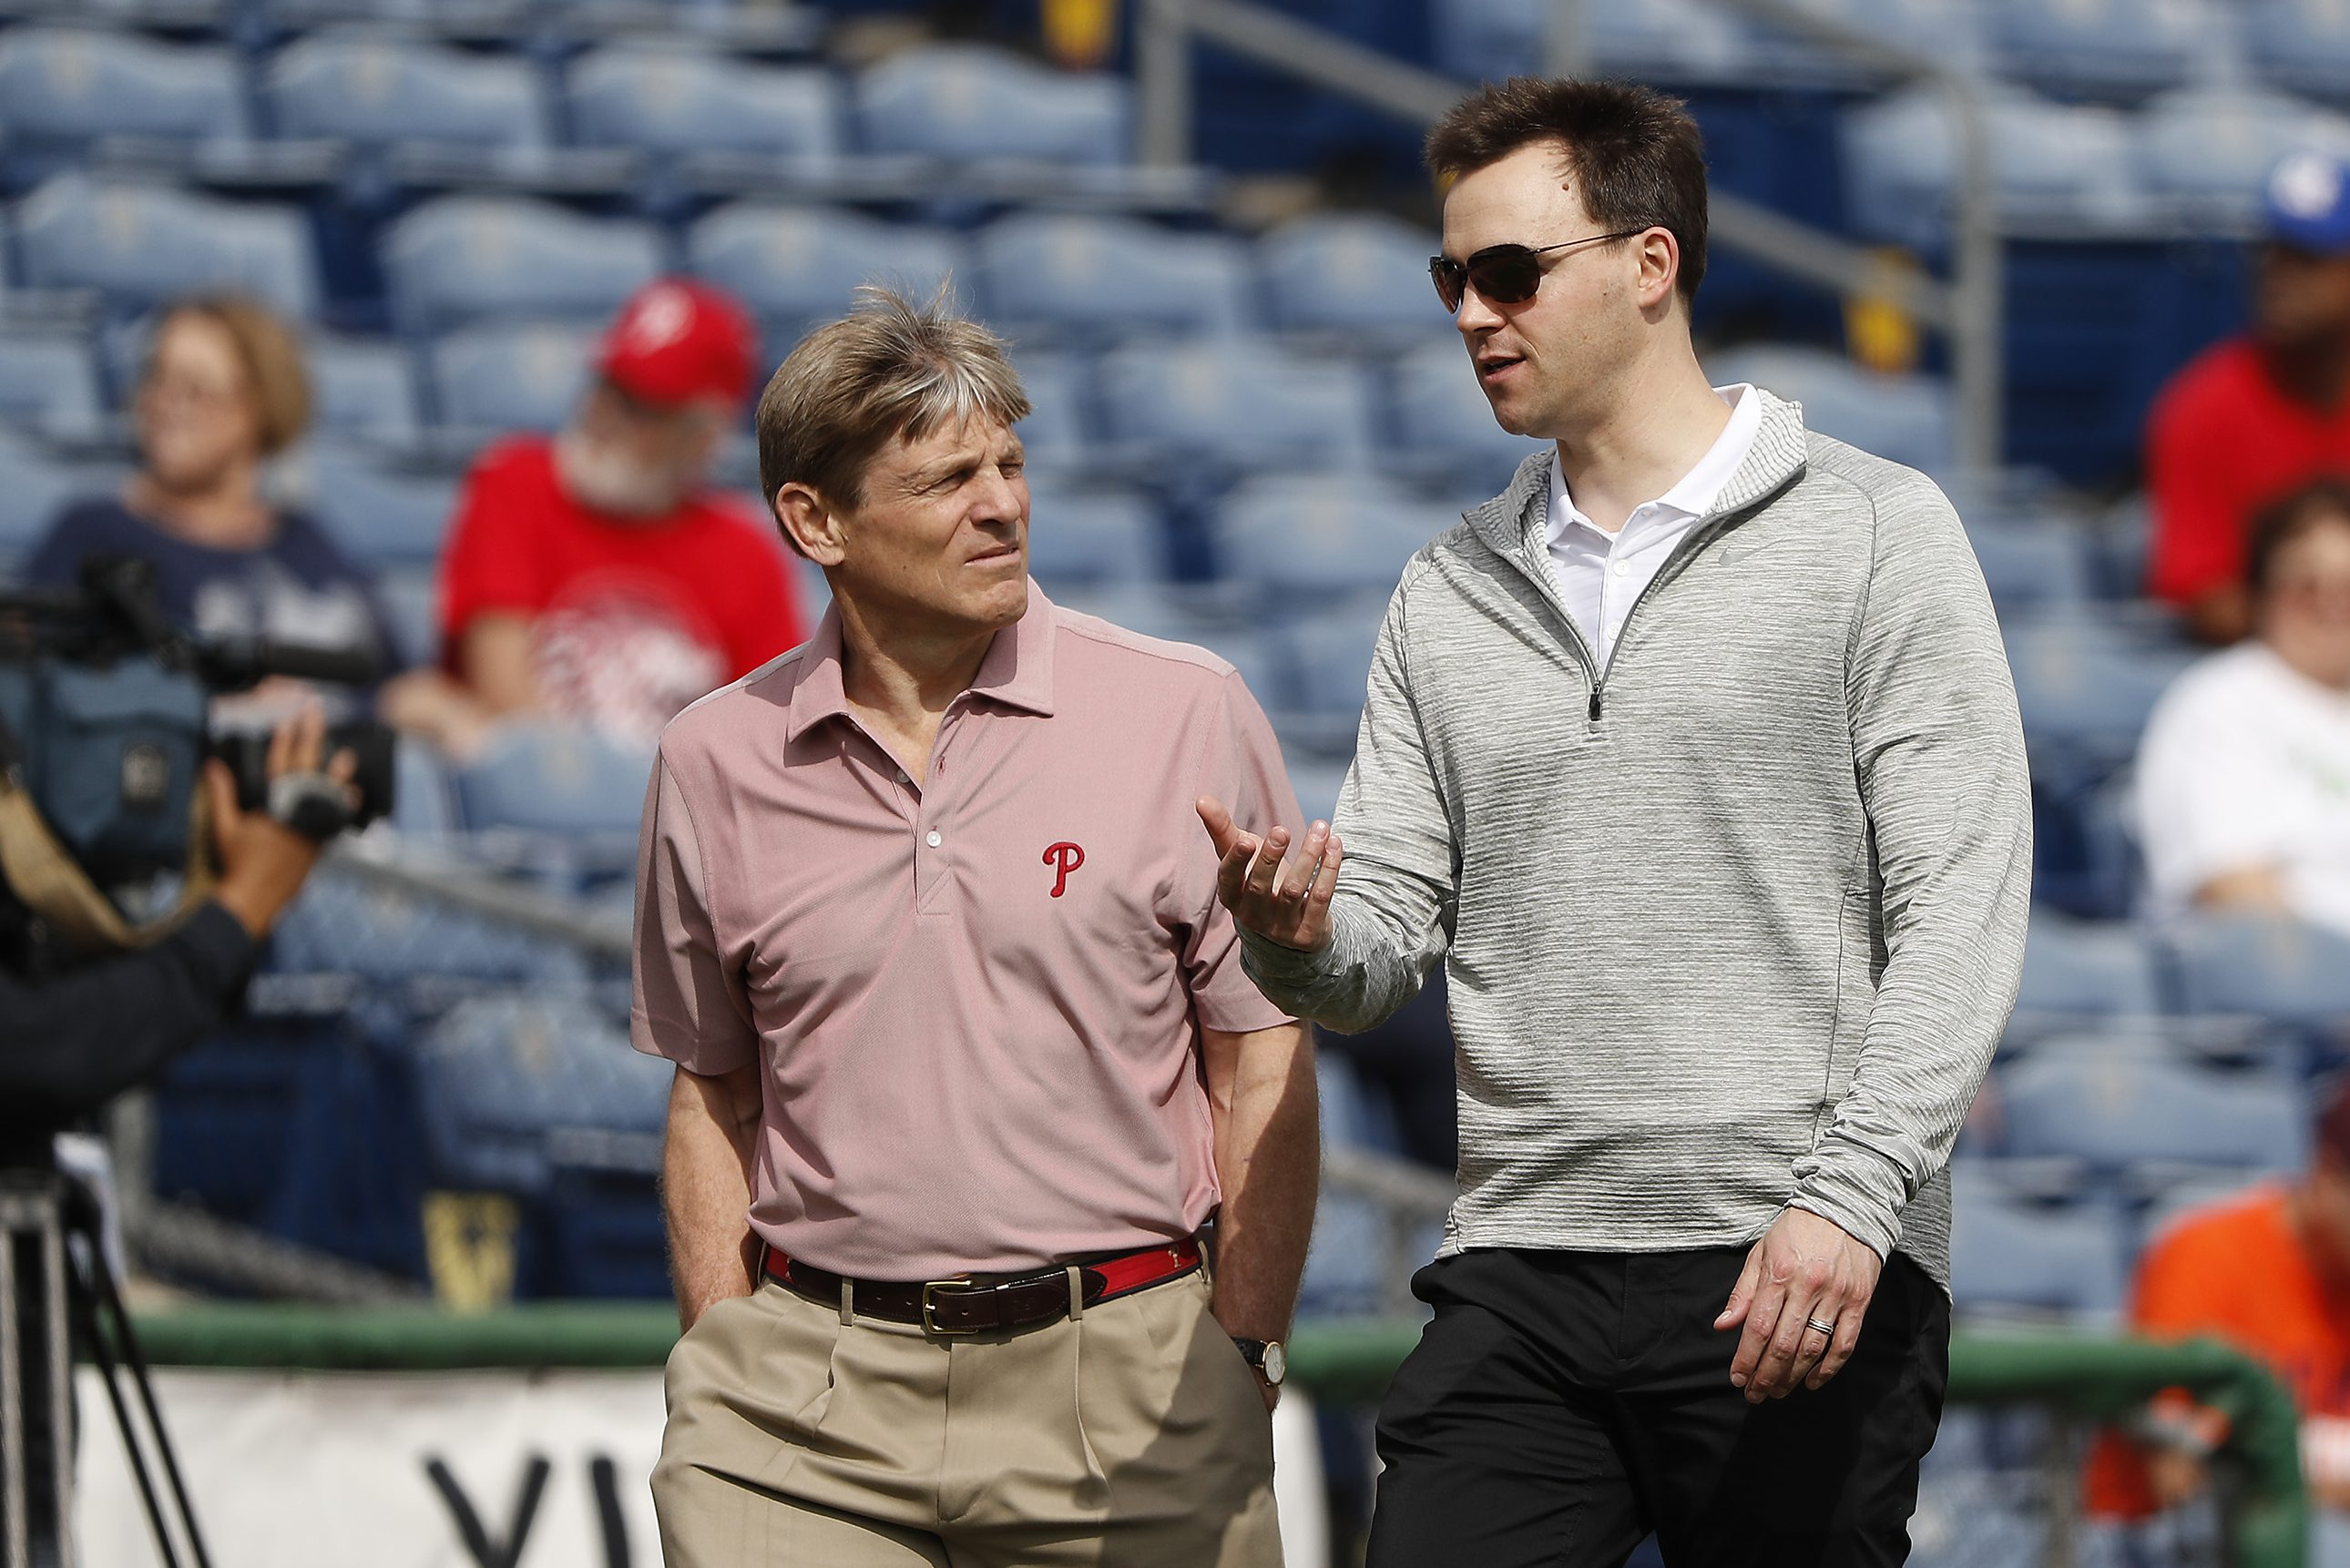 Phillies owner John Middleton, left, has money to spend this offseason. It will be up to general manager Matt Klentak, right, to determine how best to spend it.